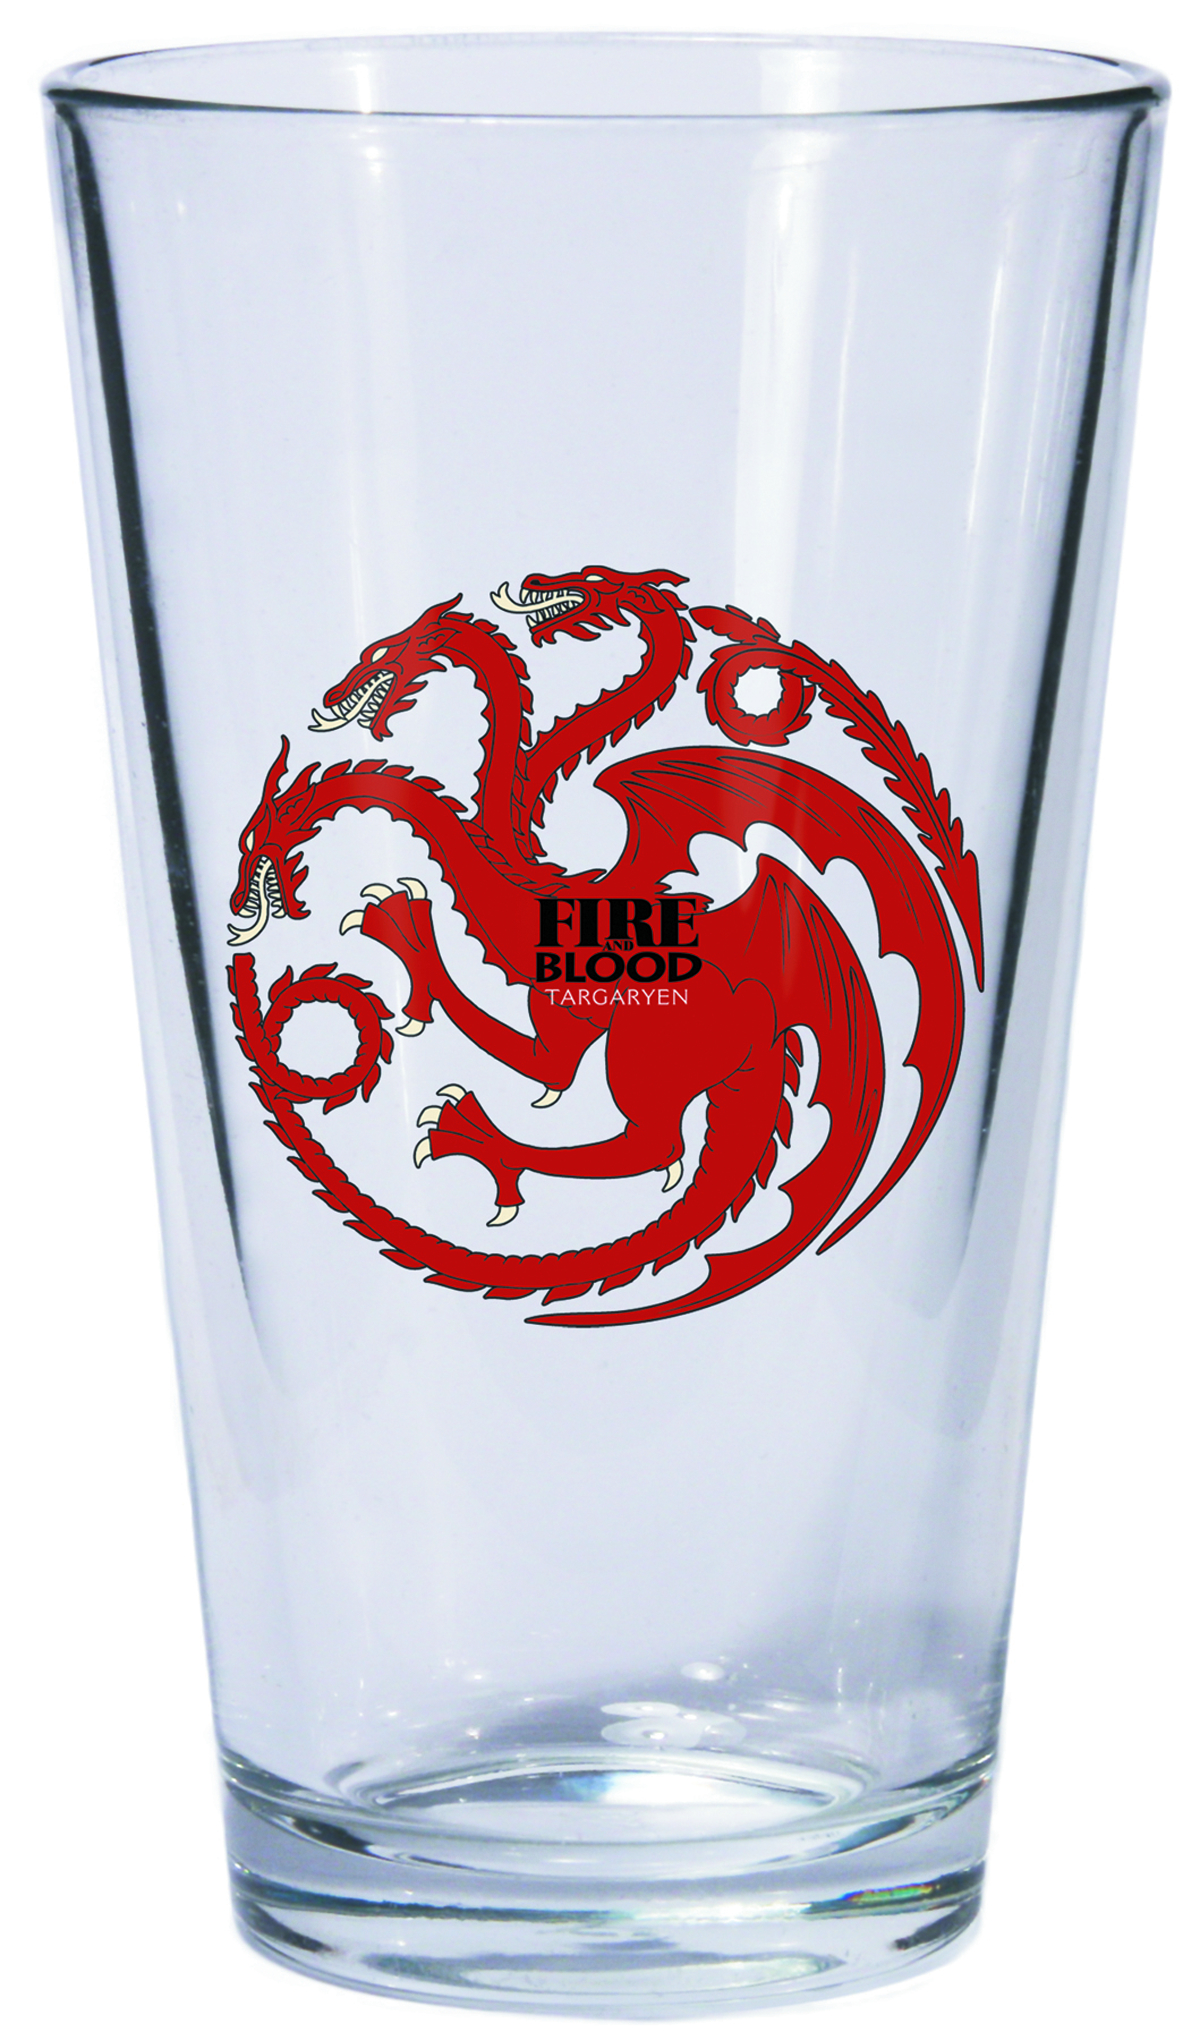 GAME OF THRONES PINT GLASS TARGARYEN SIGIL